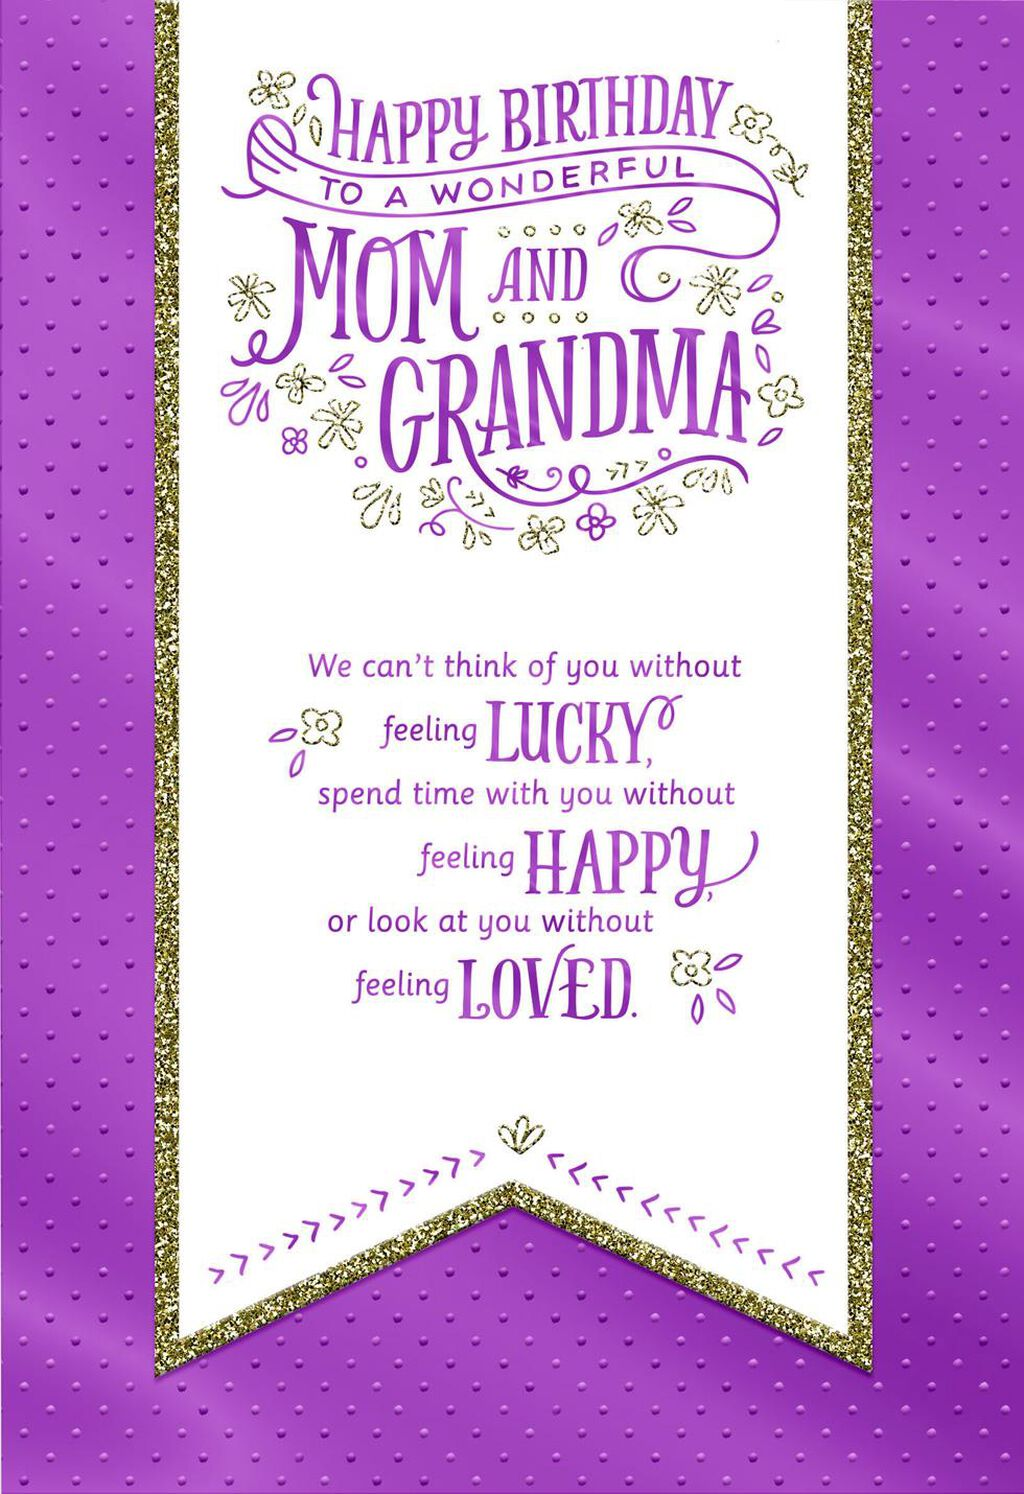 For A Wonderful Mom And Grandma Banner Birthday Card From All